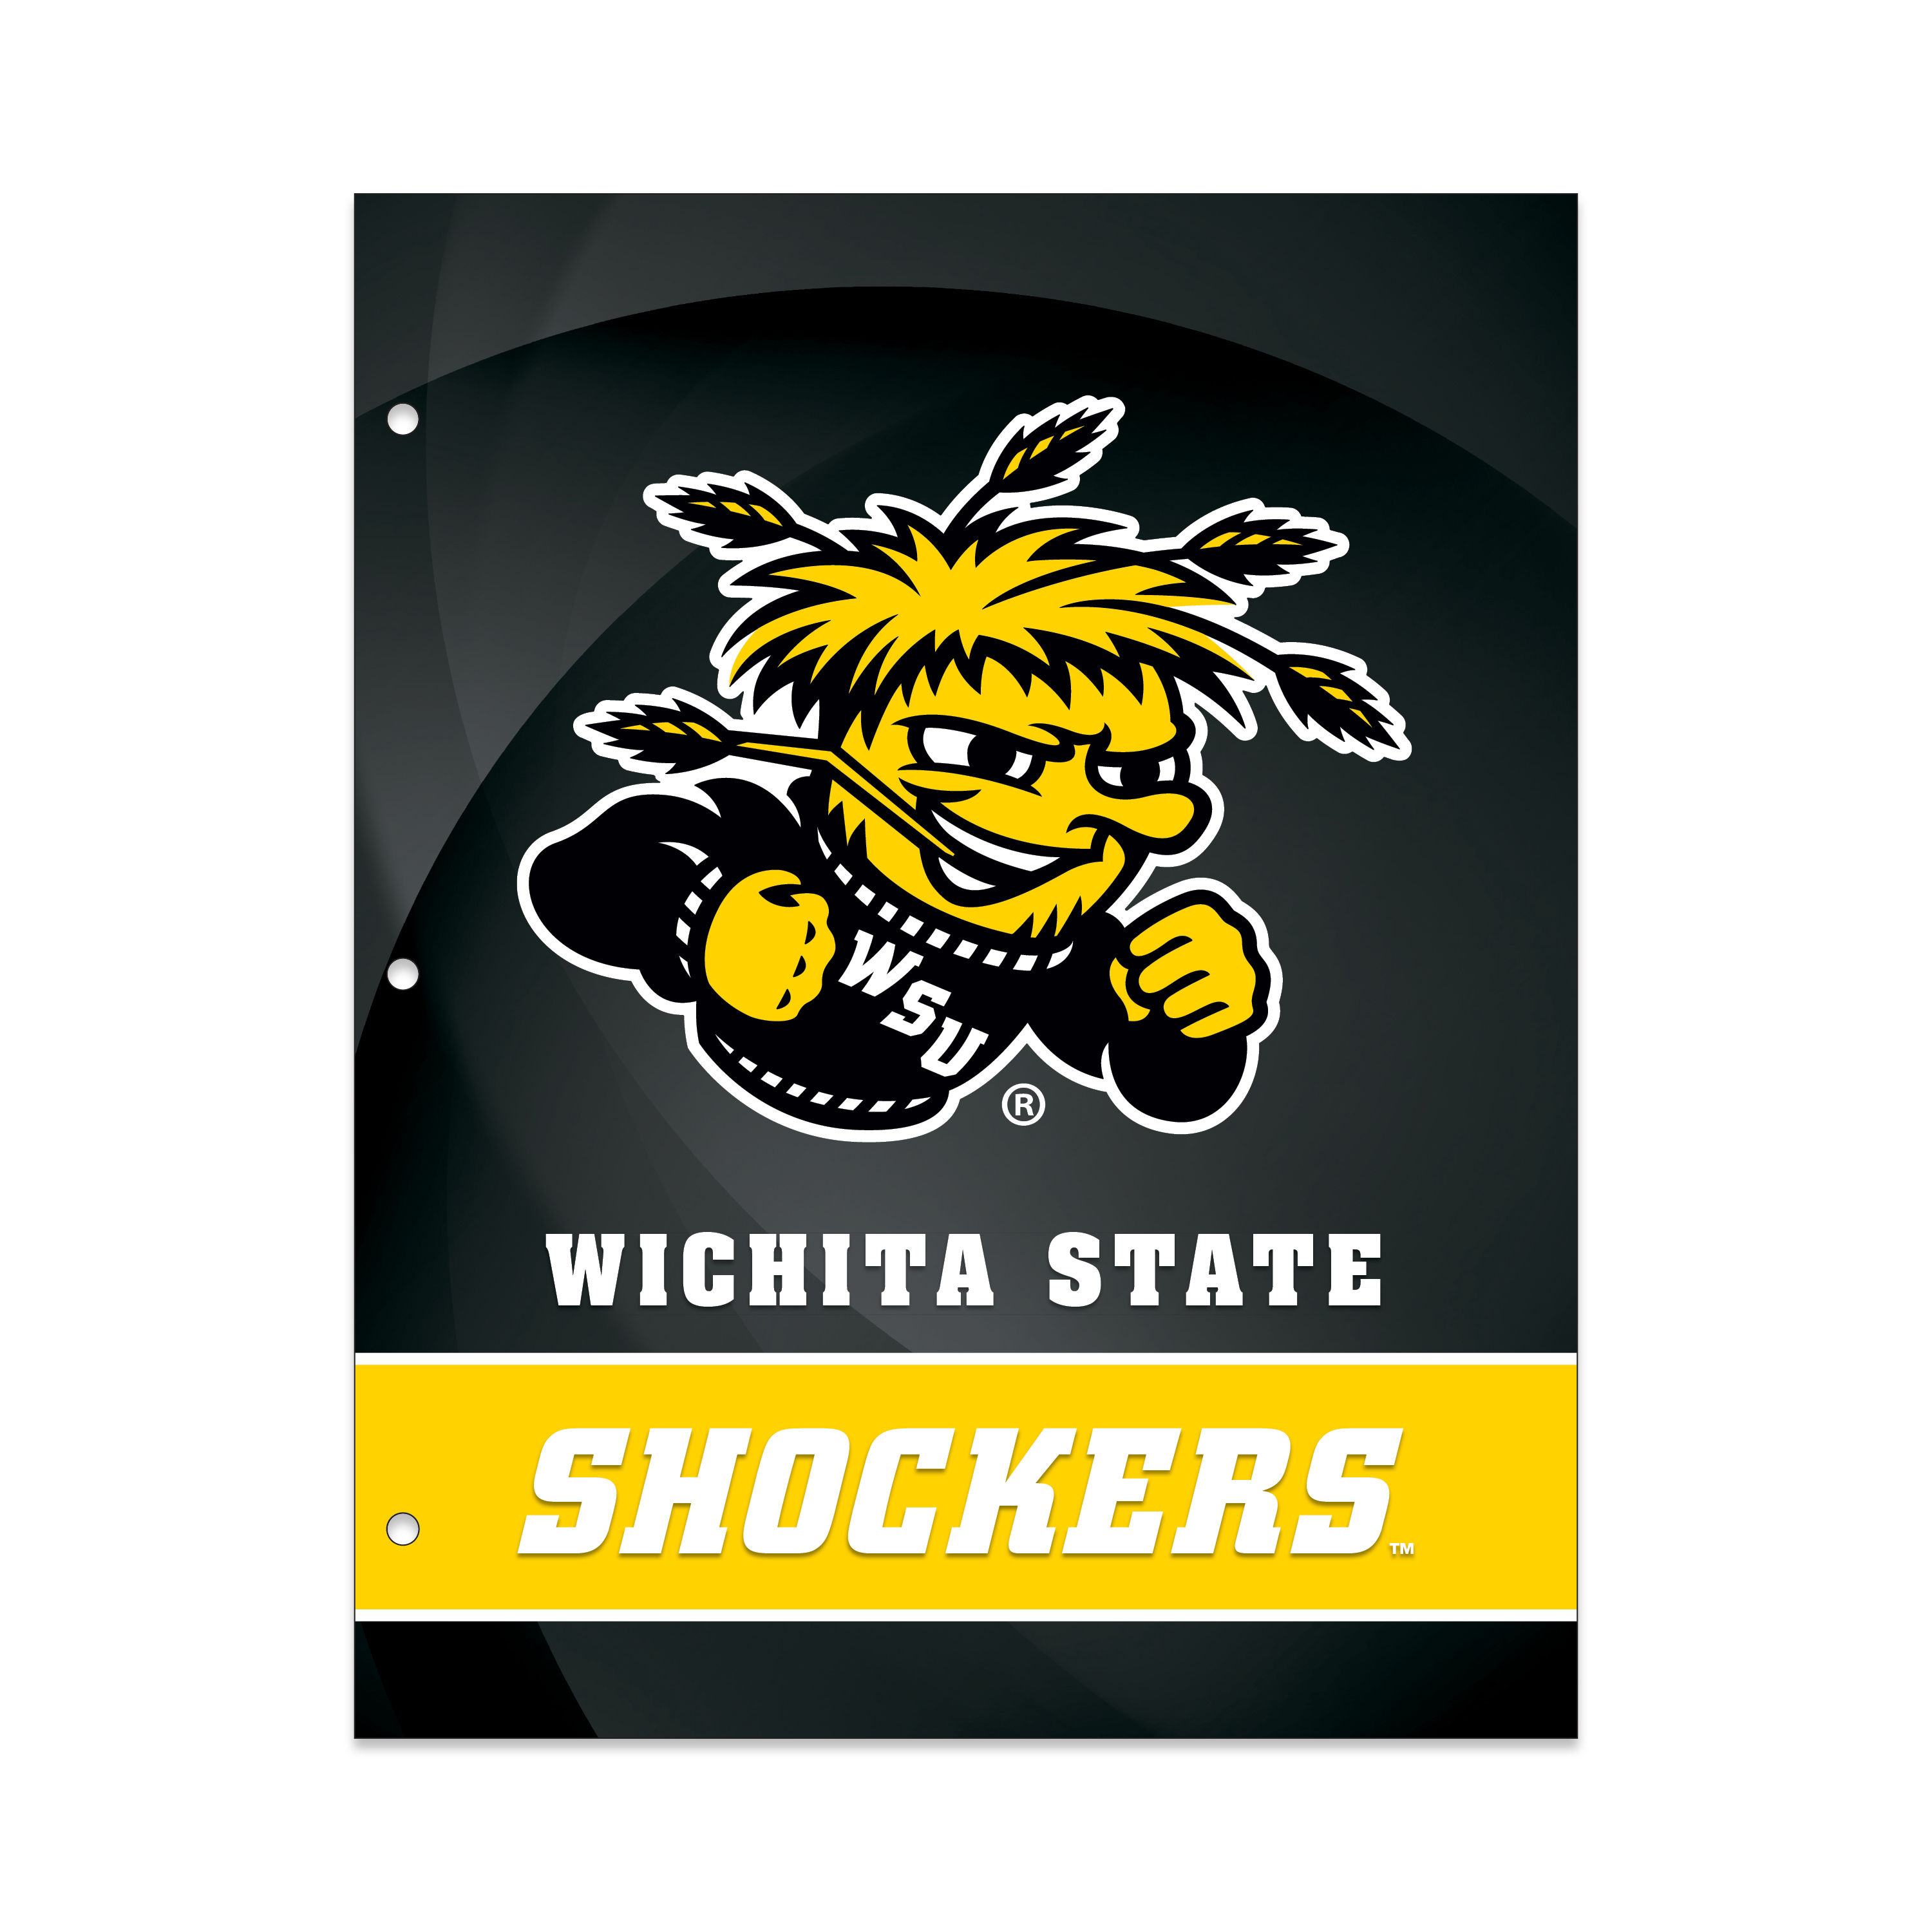 NCAA Wichita State Shockers 2 Pocket Portfolio, Three Hole Punched, Fits Letter Size